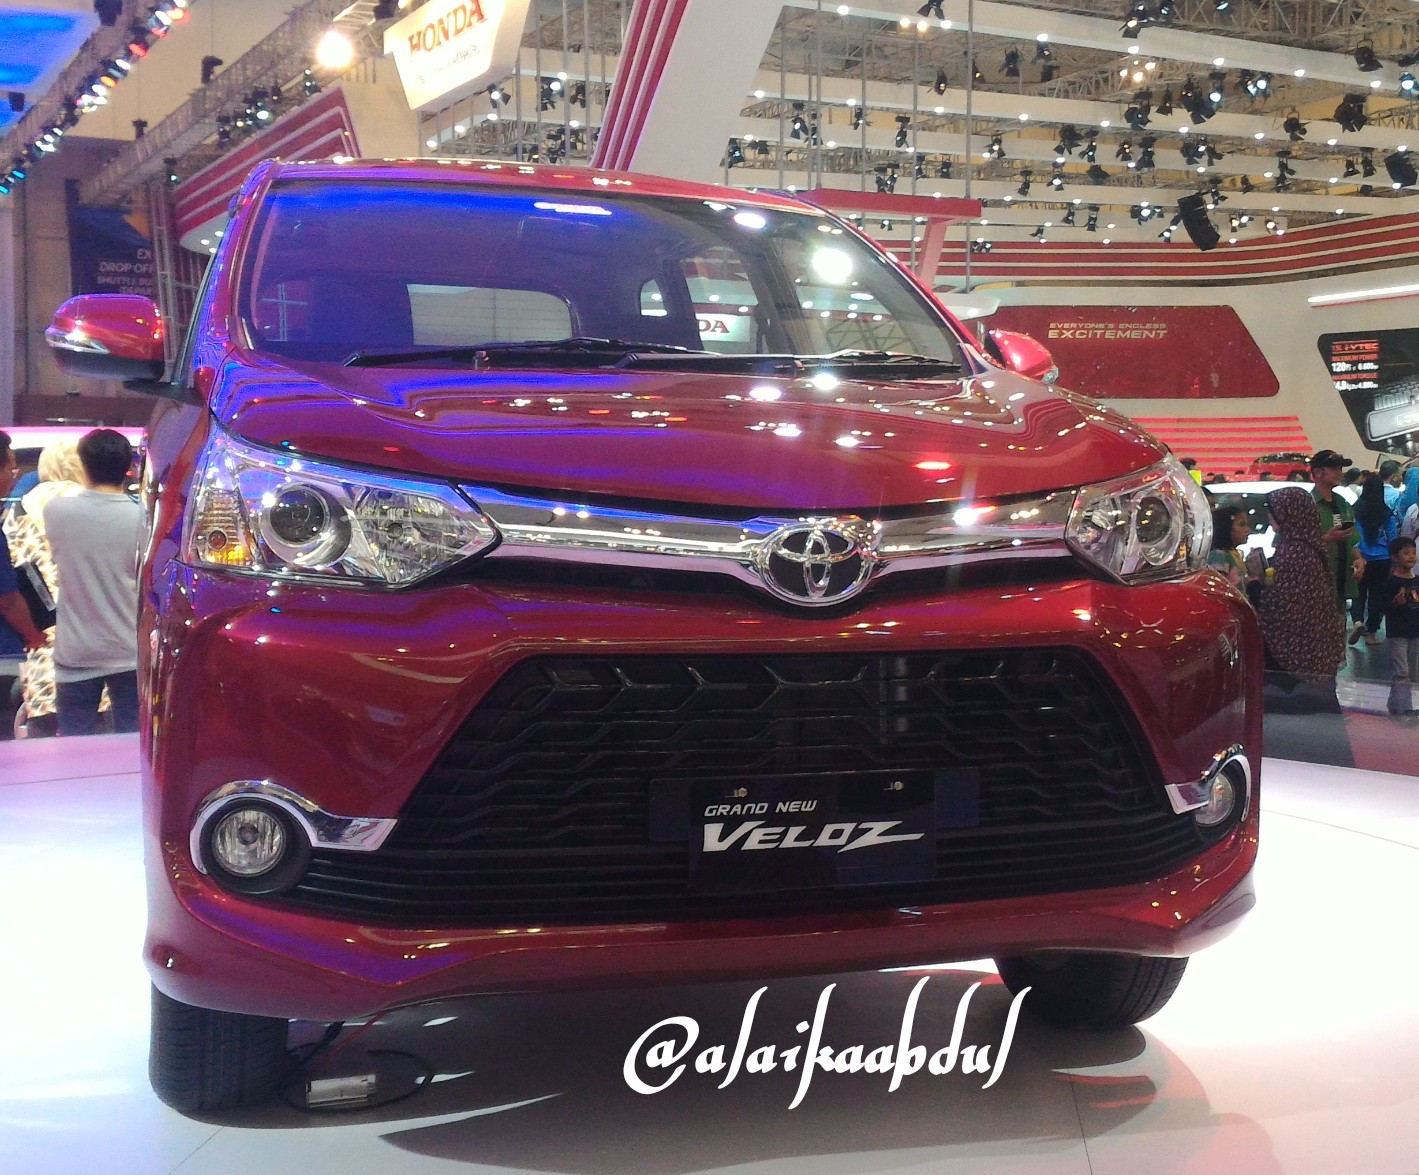 Grand New Veloz Warna Merah Head Unit 2018 Daya Magis The Avanza Dan My Virtual Corner